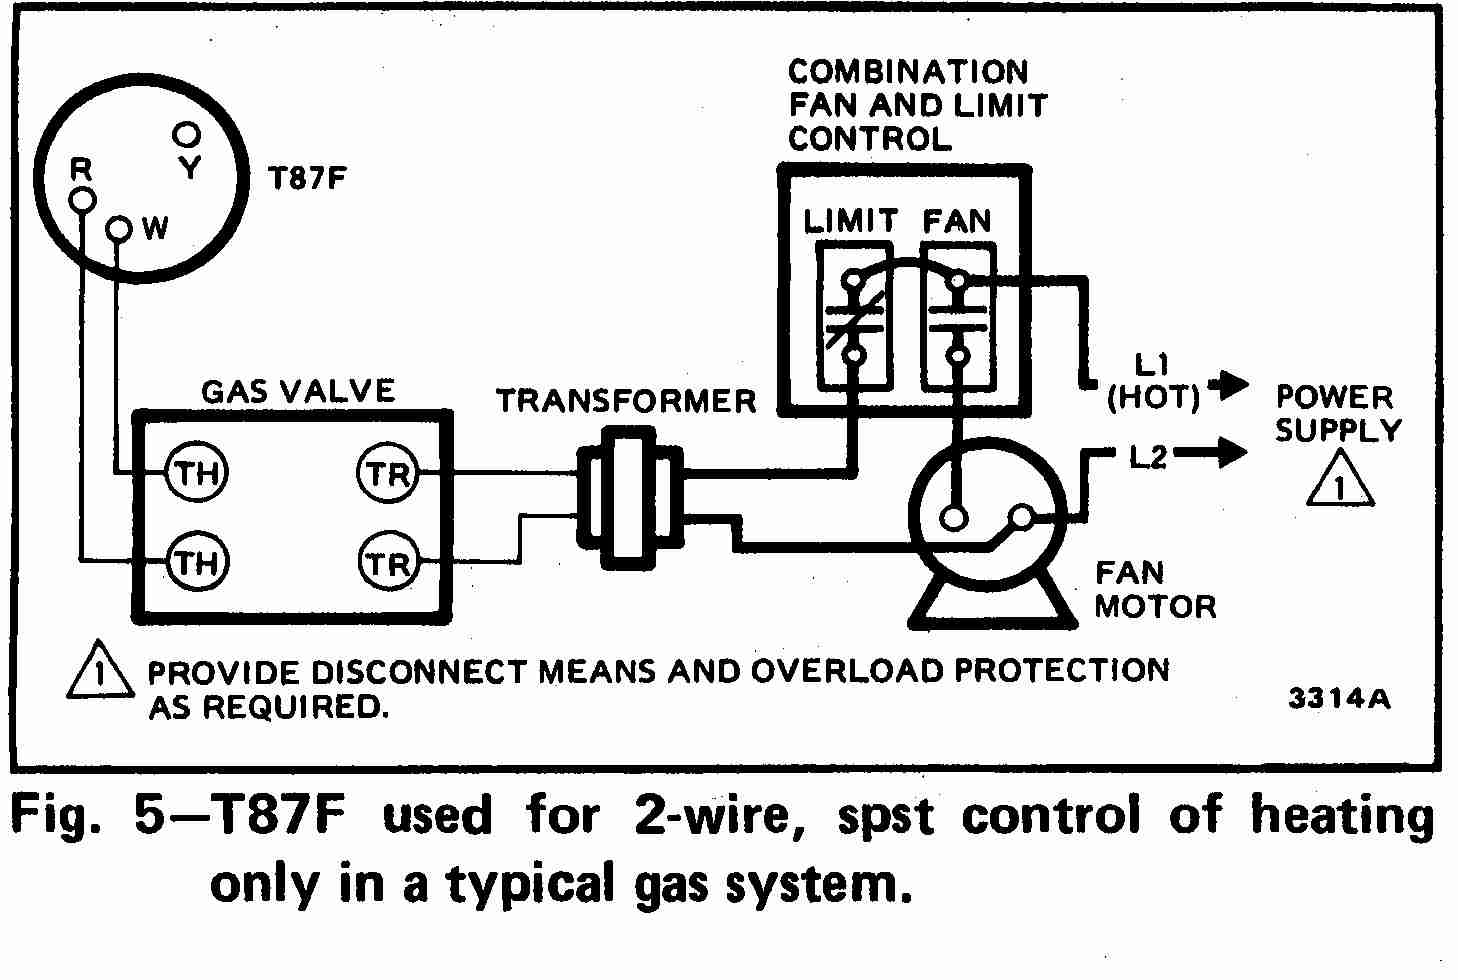 Room thermostat wiring diagrams for hvac systems honeywell t87f thermostat wiring diagram for 2 wire spst control of heating only in asfbconference2016